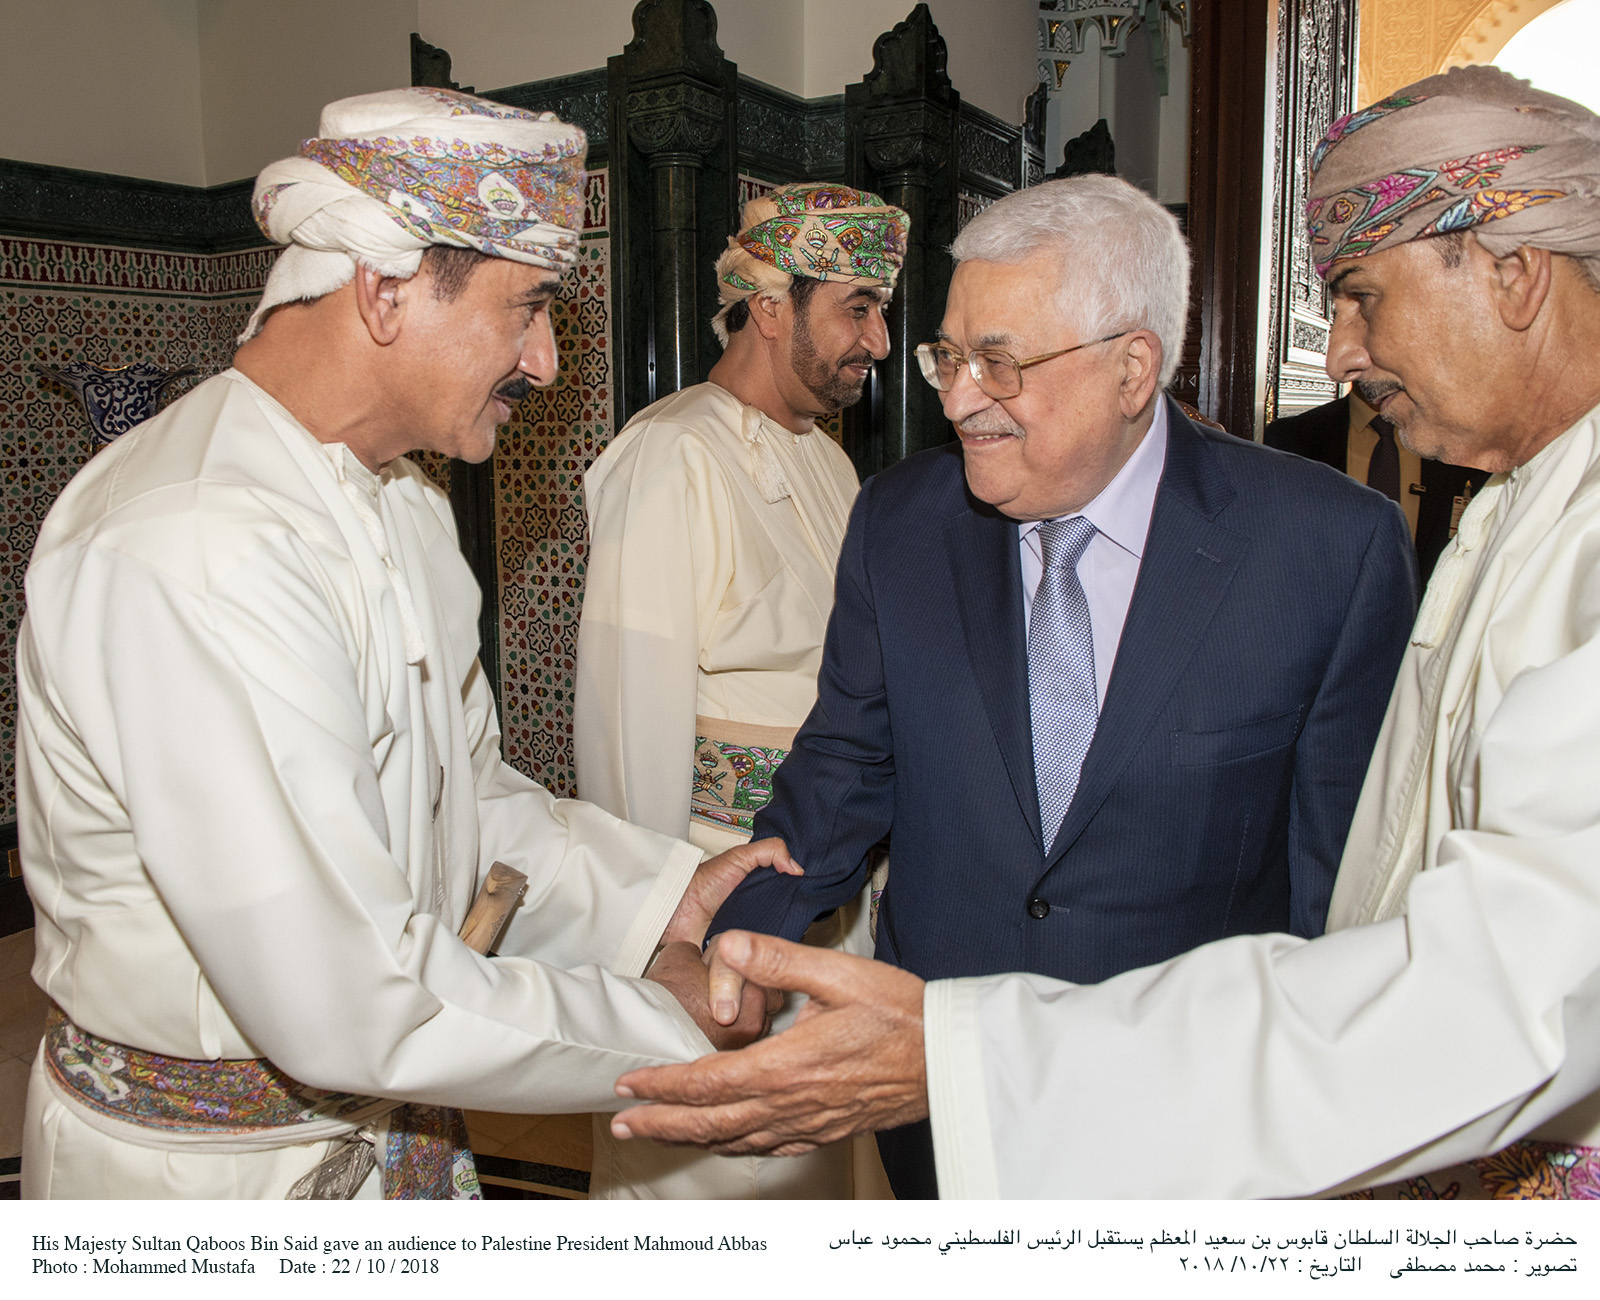 In pictures: His Majesty gives audience to Palestine President Abbas